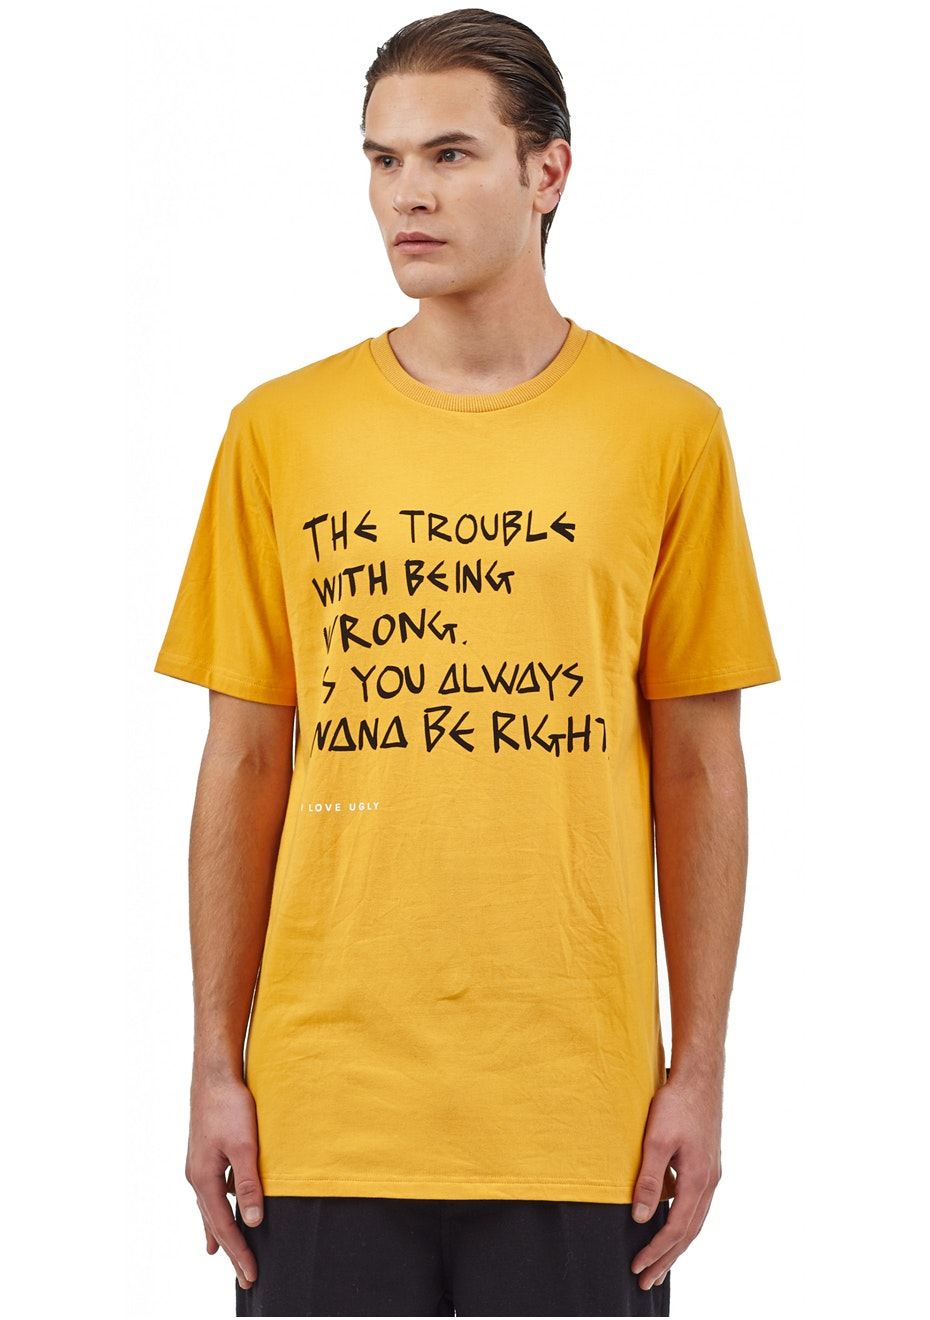 I Love Ugly - Ongoing Troubles Tee - American Mustard